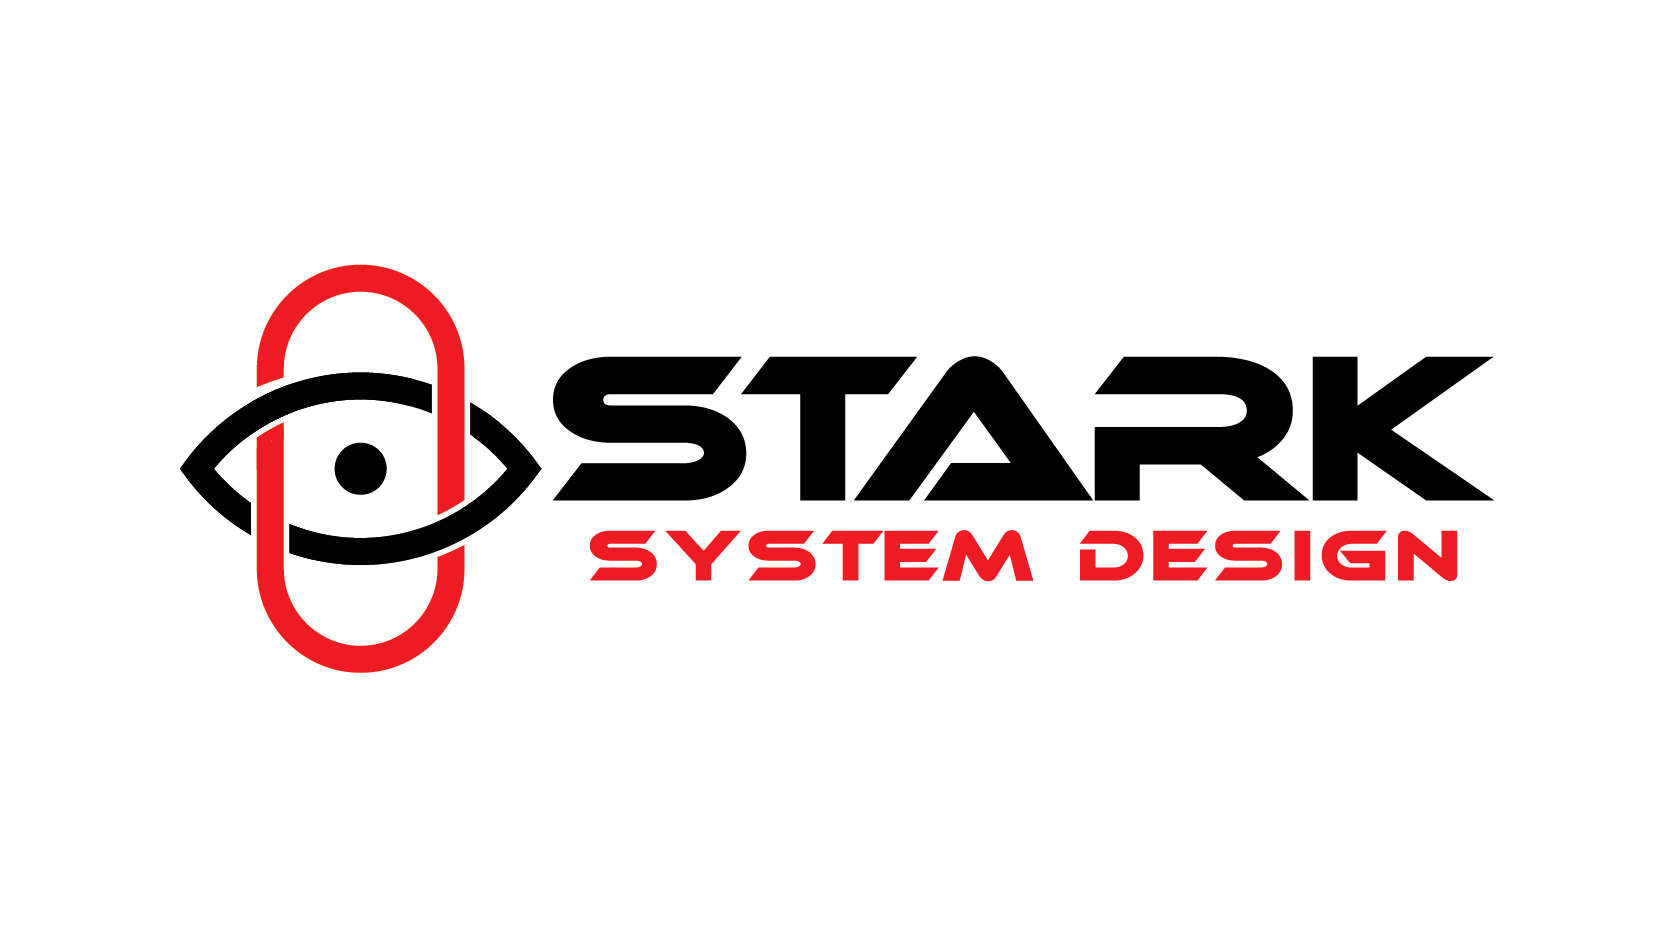 Design Bureau Llc Stark System Design Llc Better Business Bureau Profile